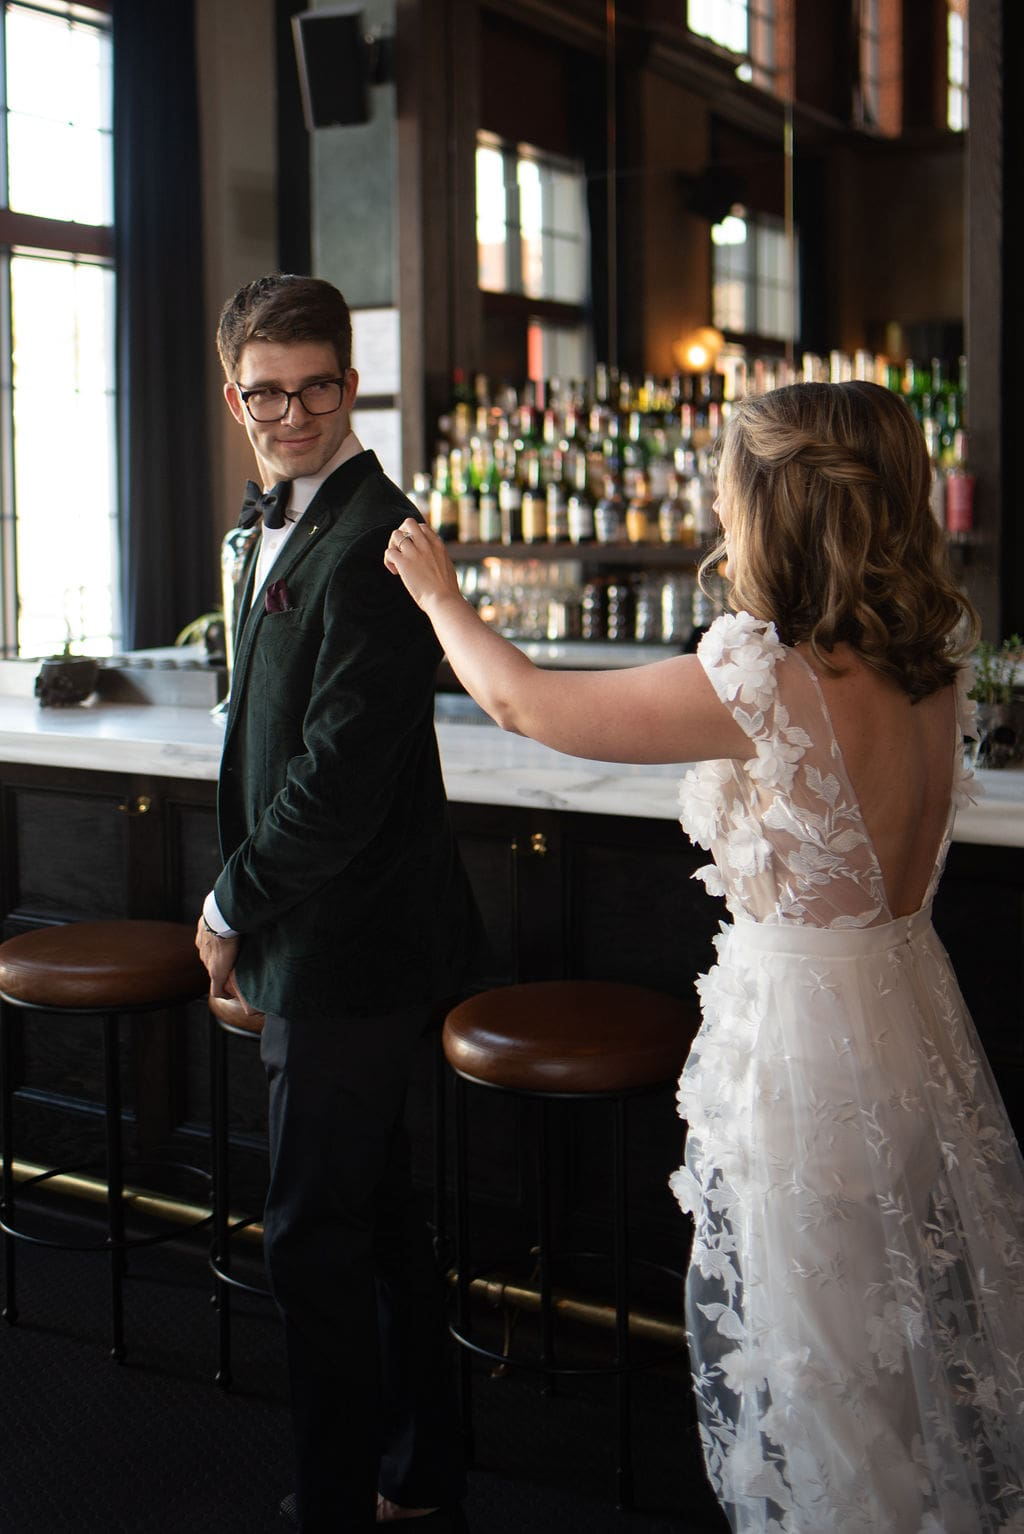 First look at Denver Colorado Elopement at The Ramble Hotel Downtown